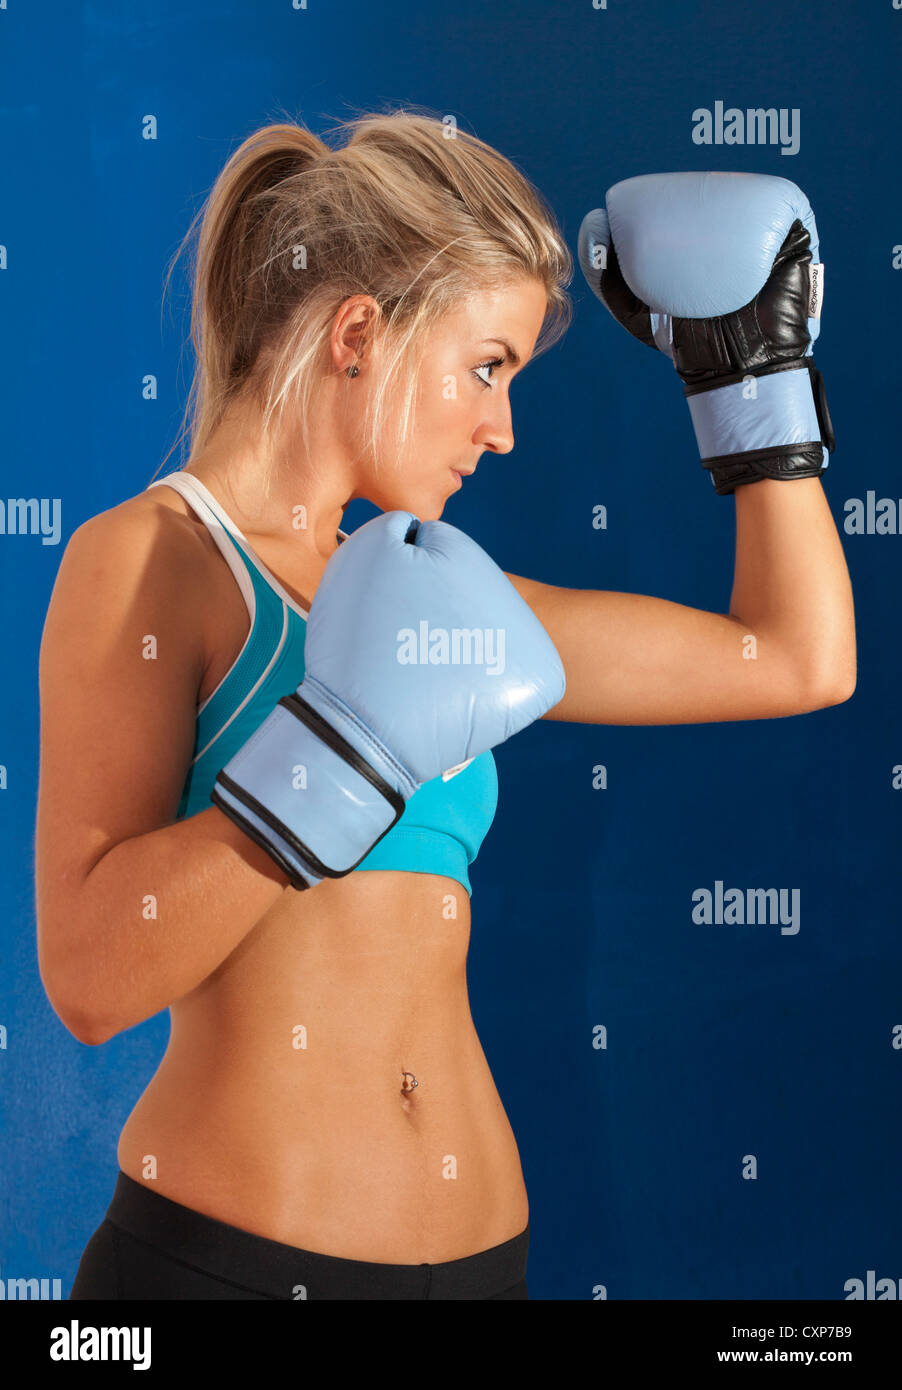 Woman boxing gloves - Stock Image